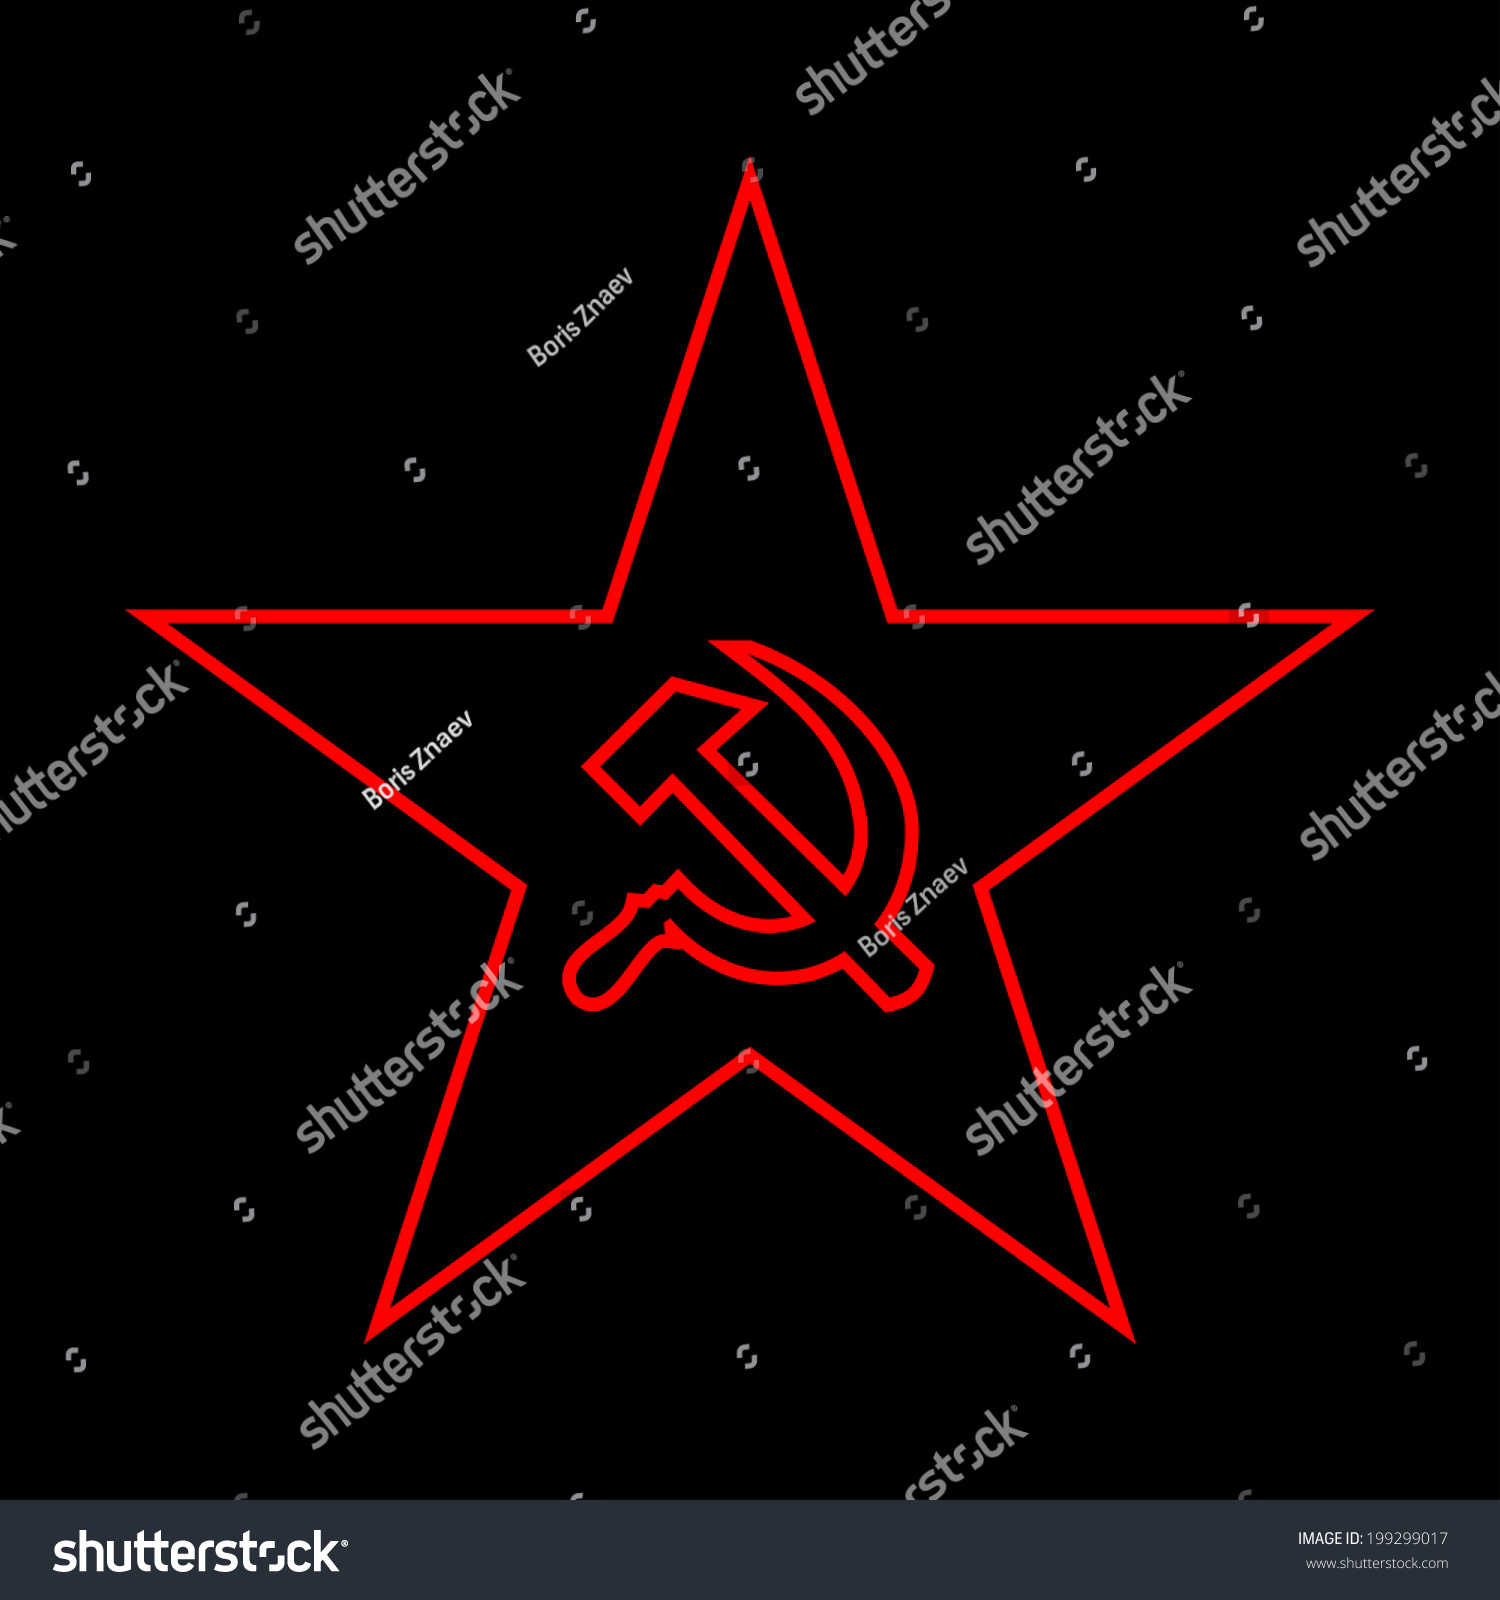 Minimal red star socialist symbols made stock illustration the minimal red star with socialist symbols made of thin lines on black background biocorpaavc Choice Image